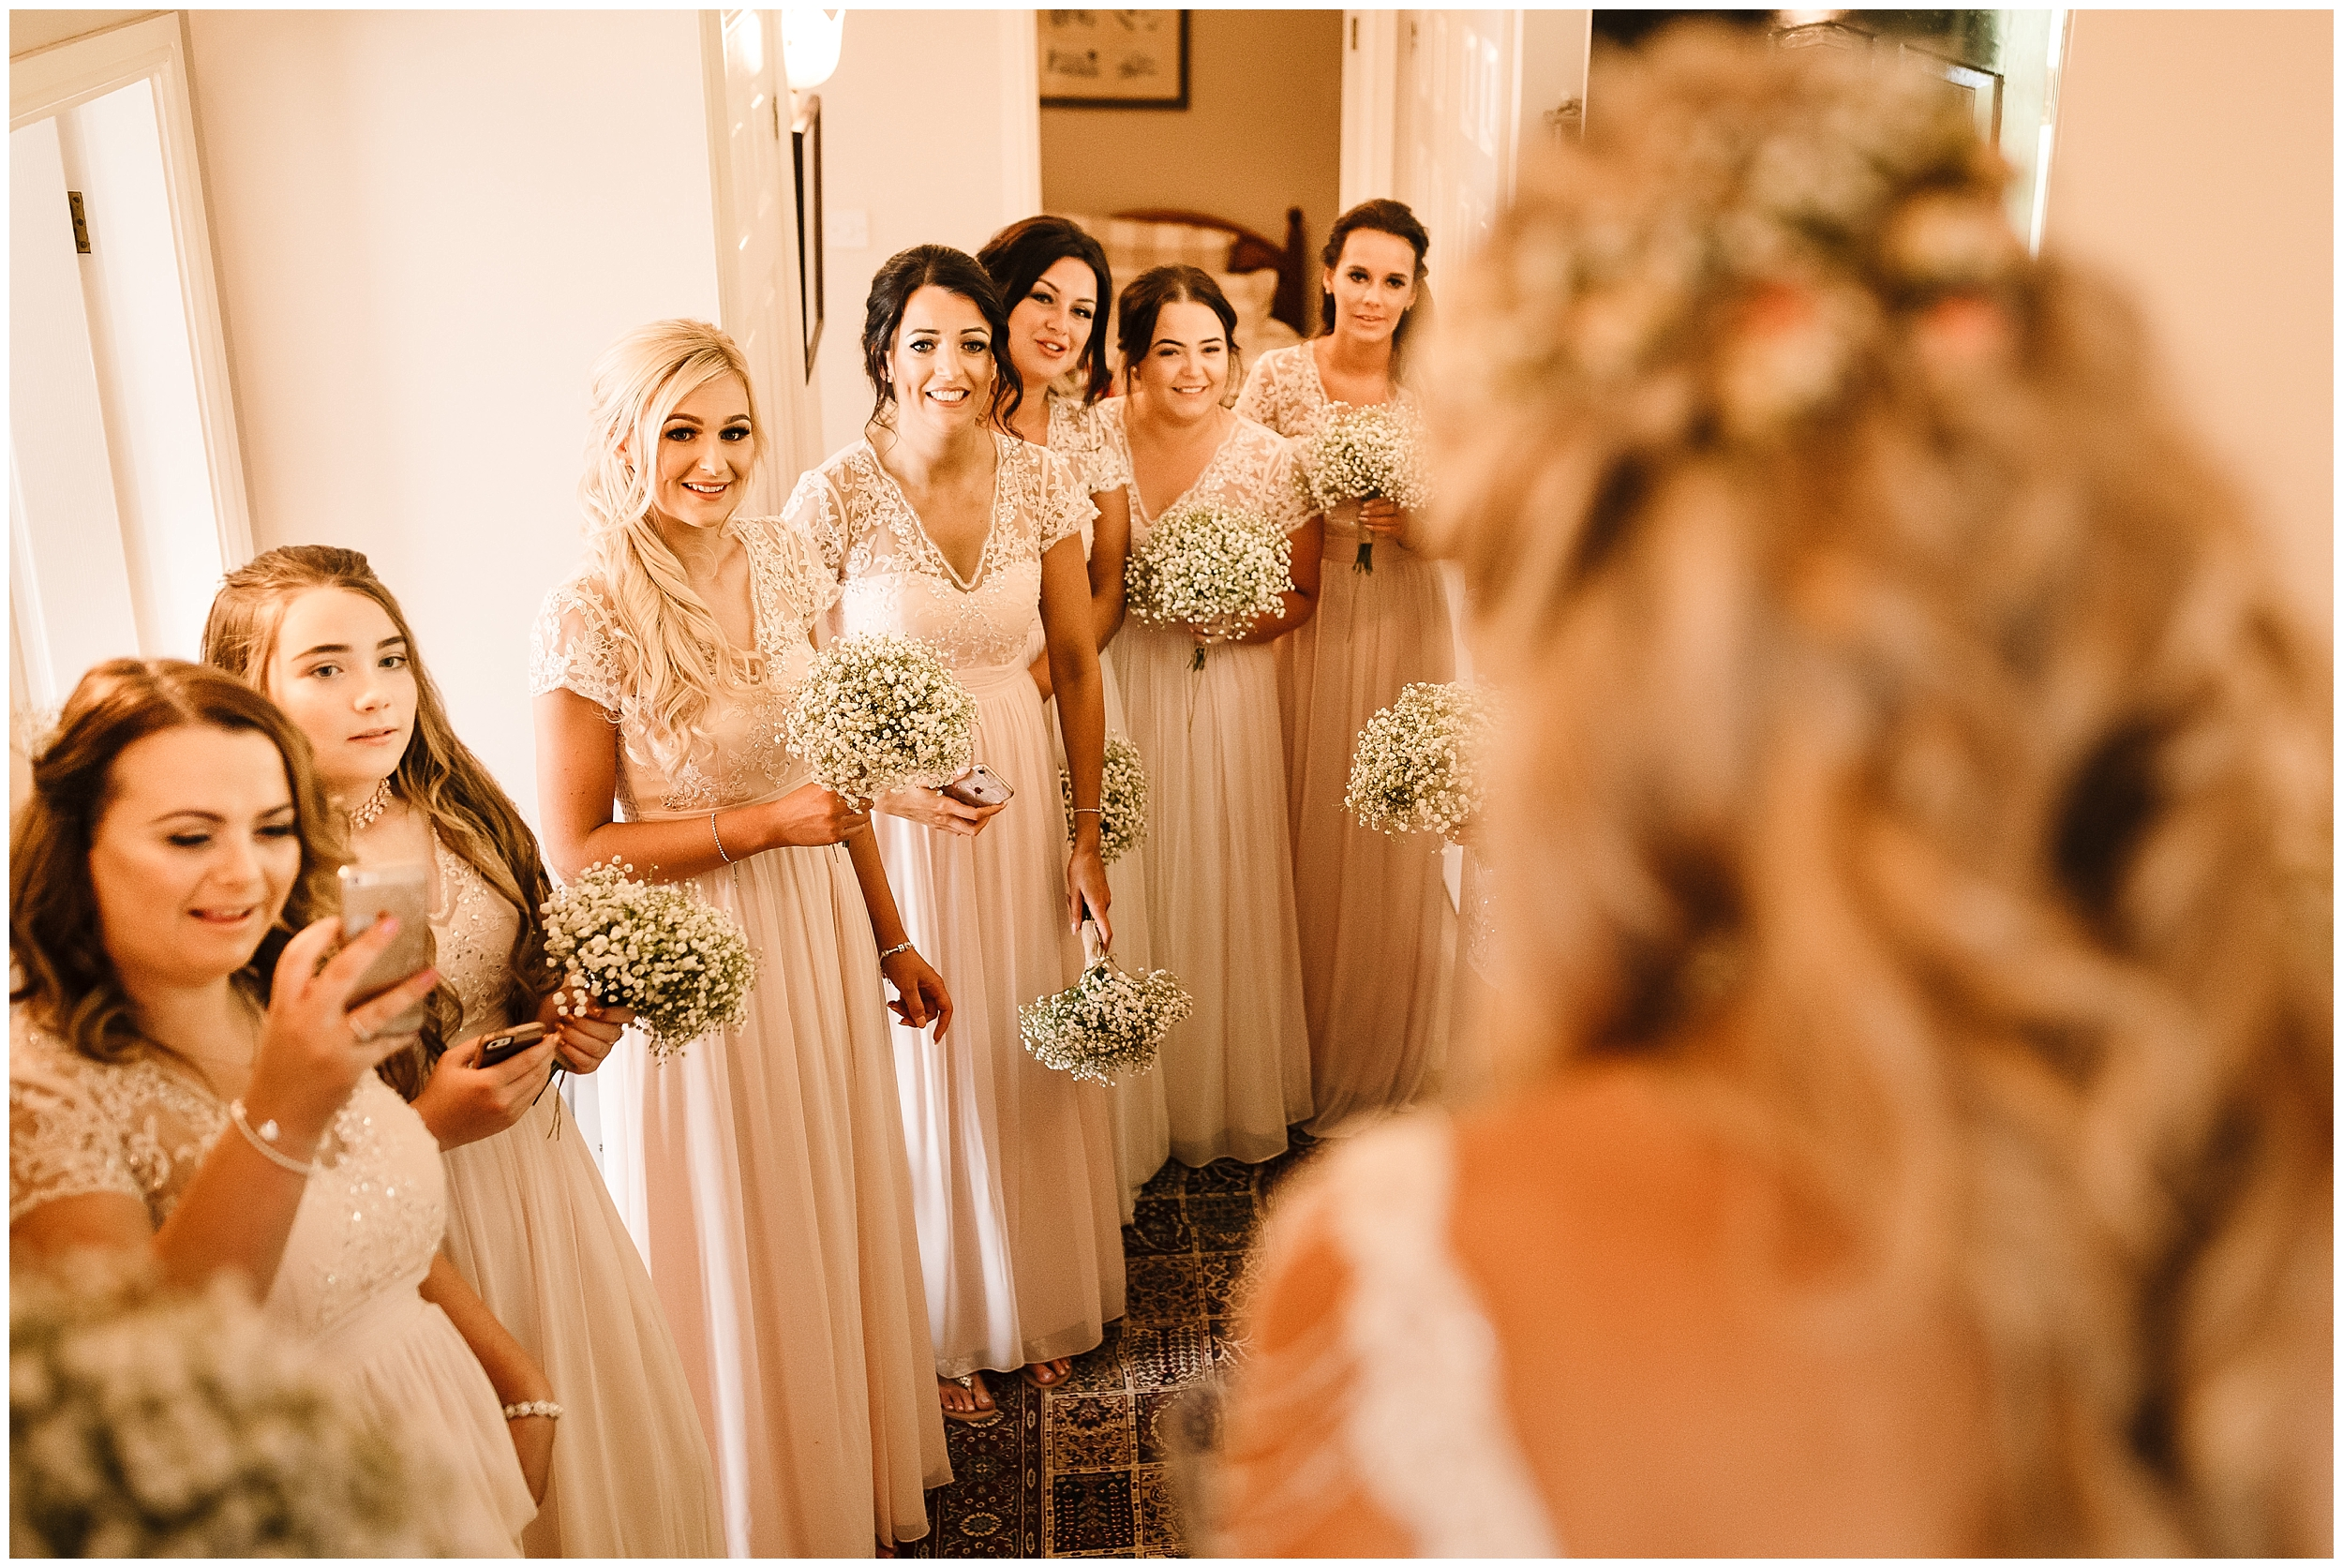 BRIDESMAIDS REACTING TO A BRIDE WALKING OUT FOR THE FIRST TIME